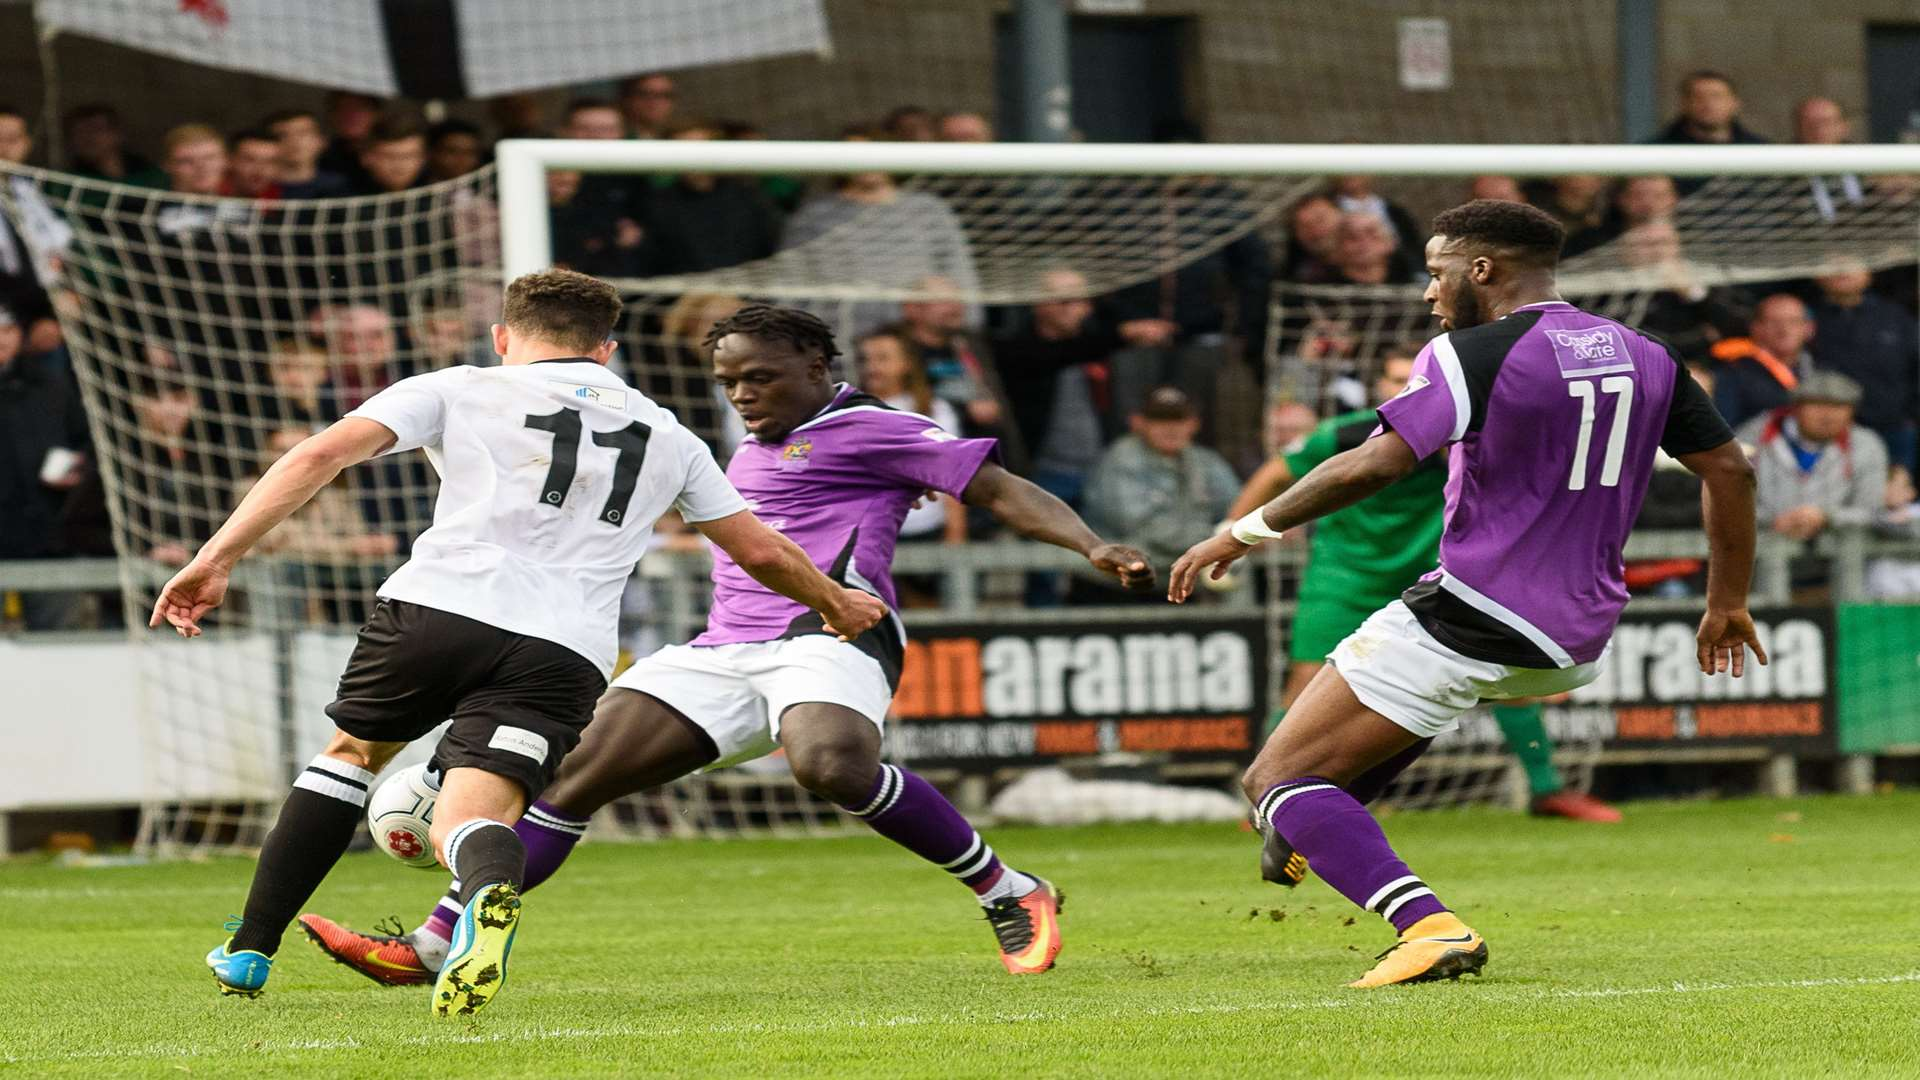 Dartford beat promotion rivals St Albans 2-1 on Saturday Picture: Tony Jones